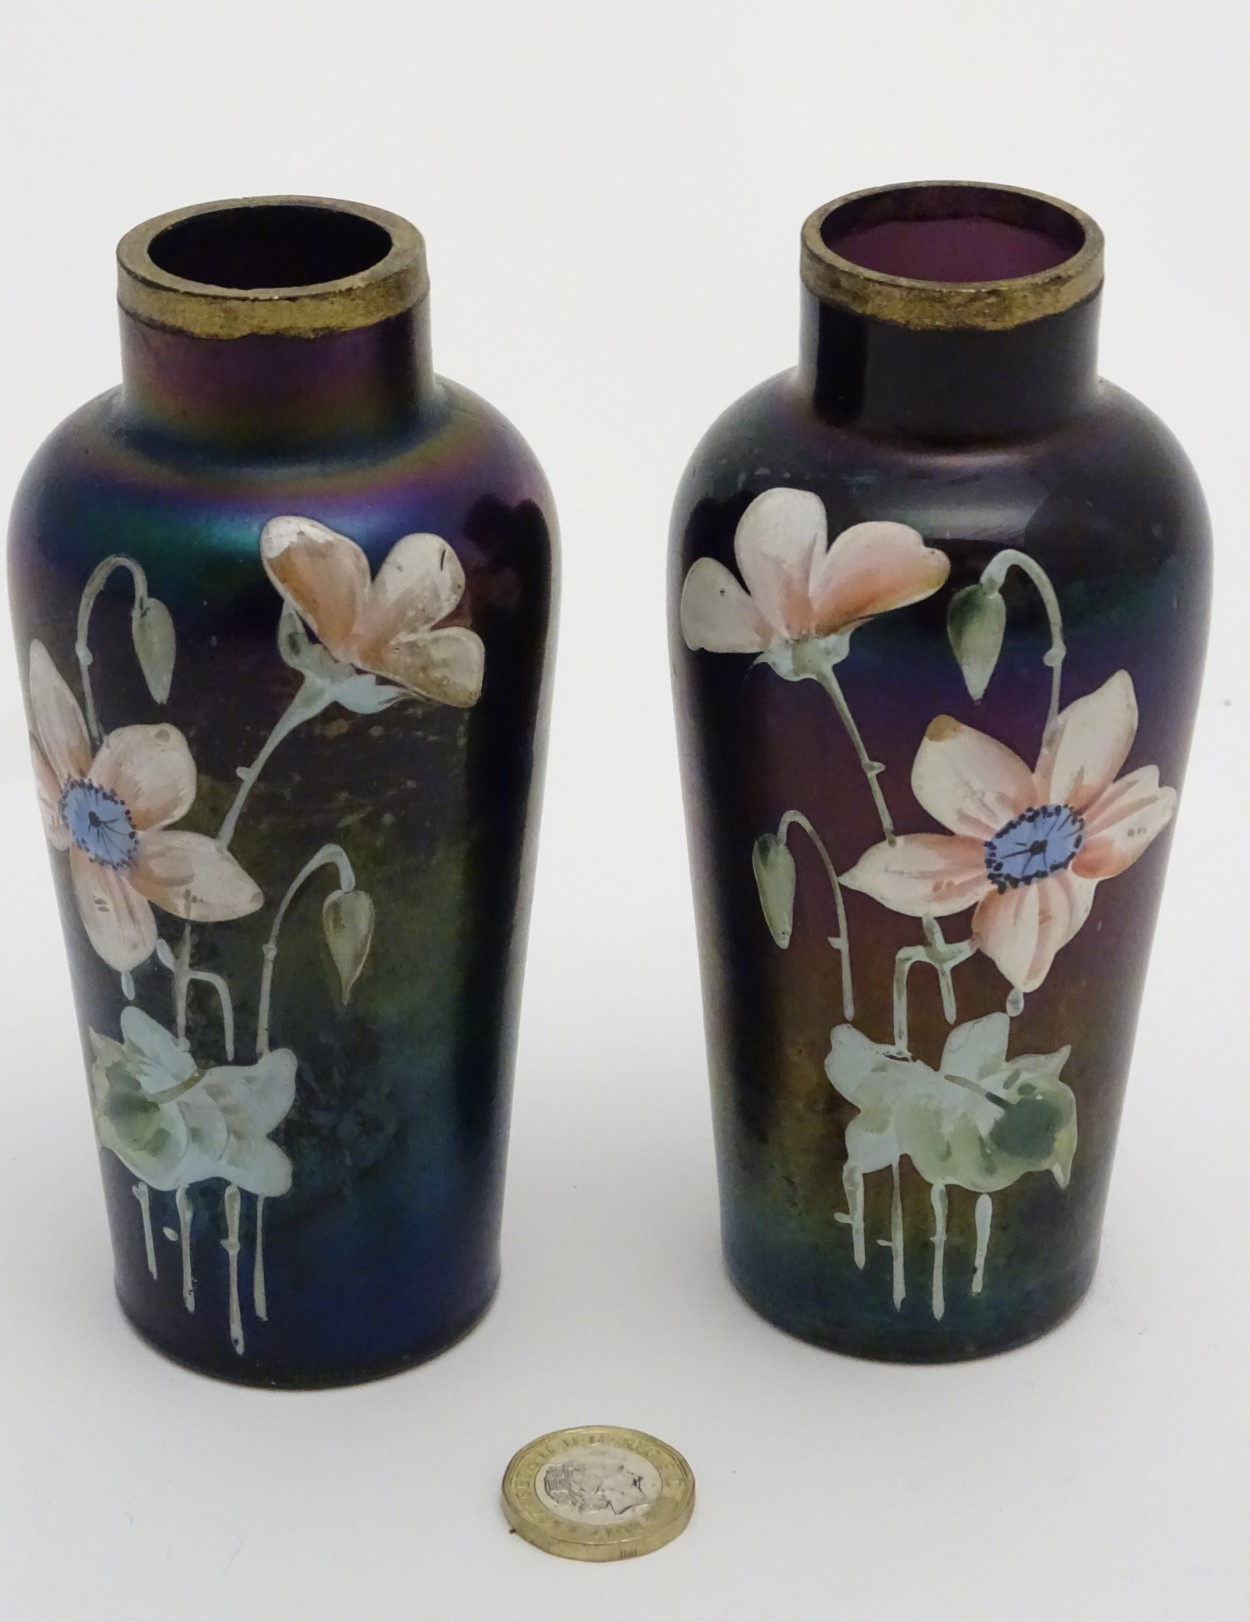 Lot 105 - Victorian Glass : a pair of iridescent glass vases with hand painted flower decoration and gilt